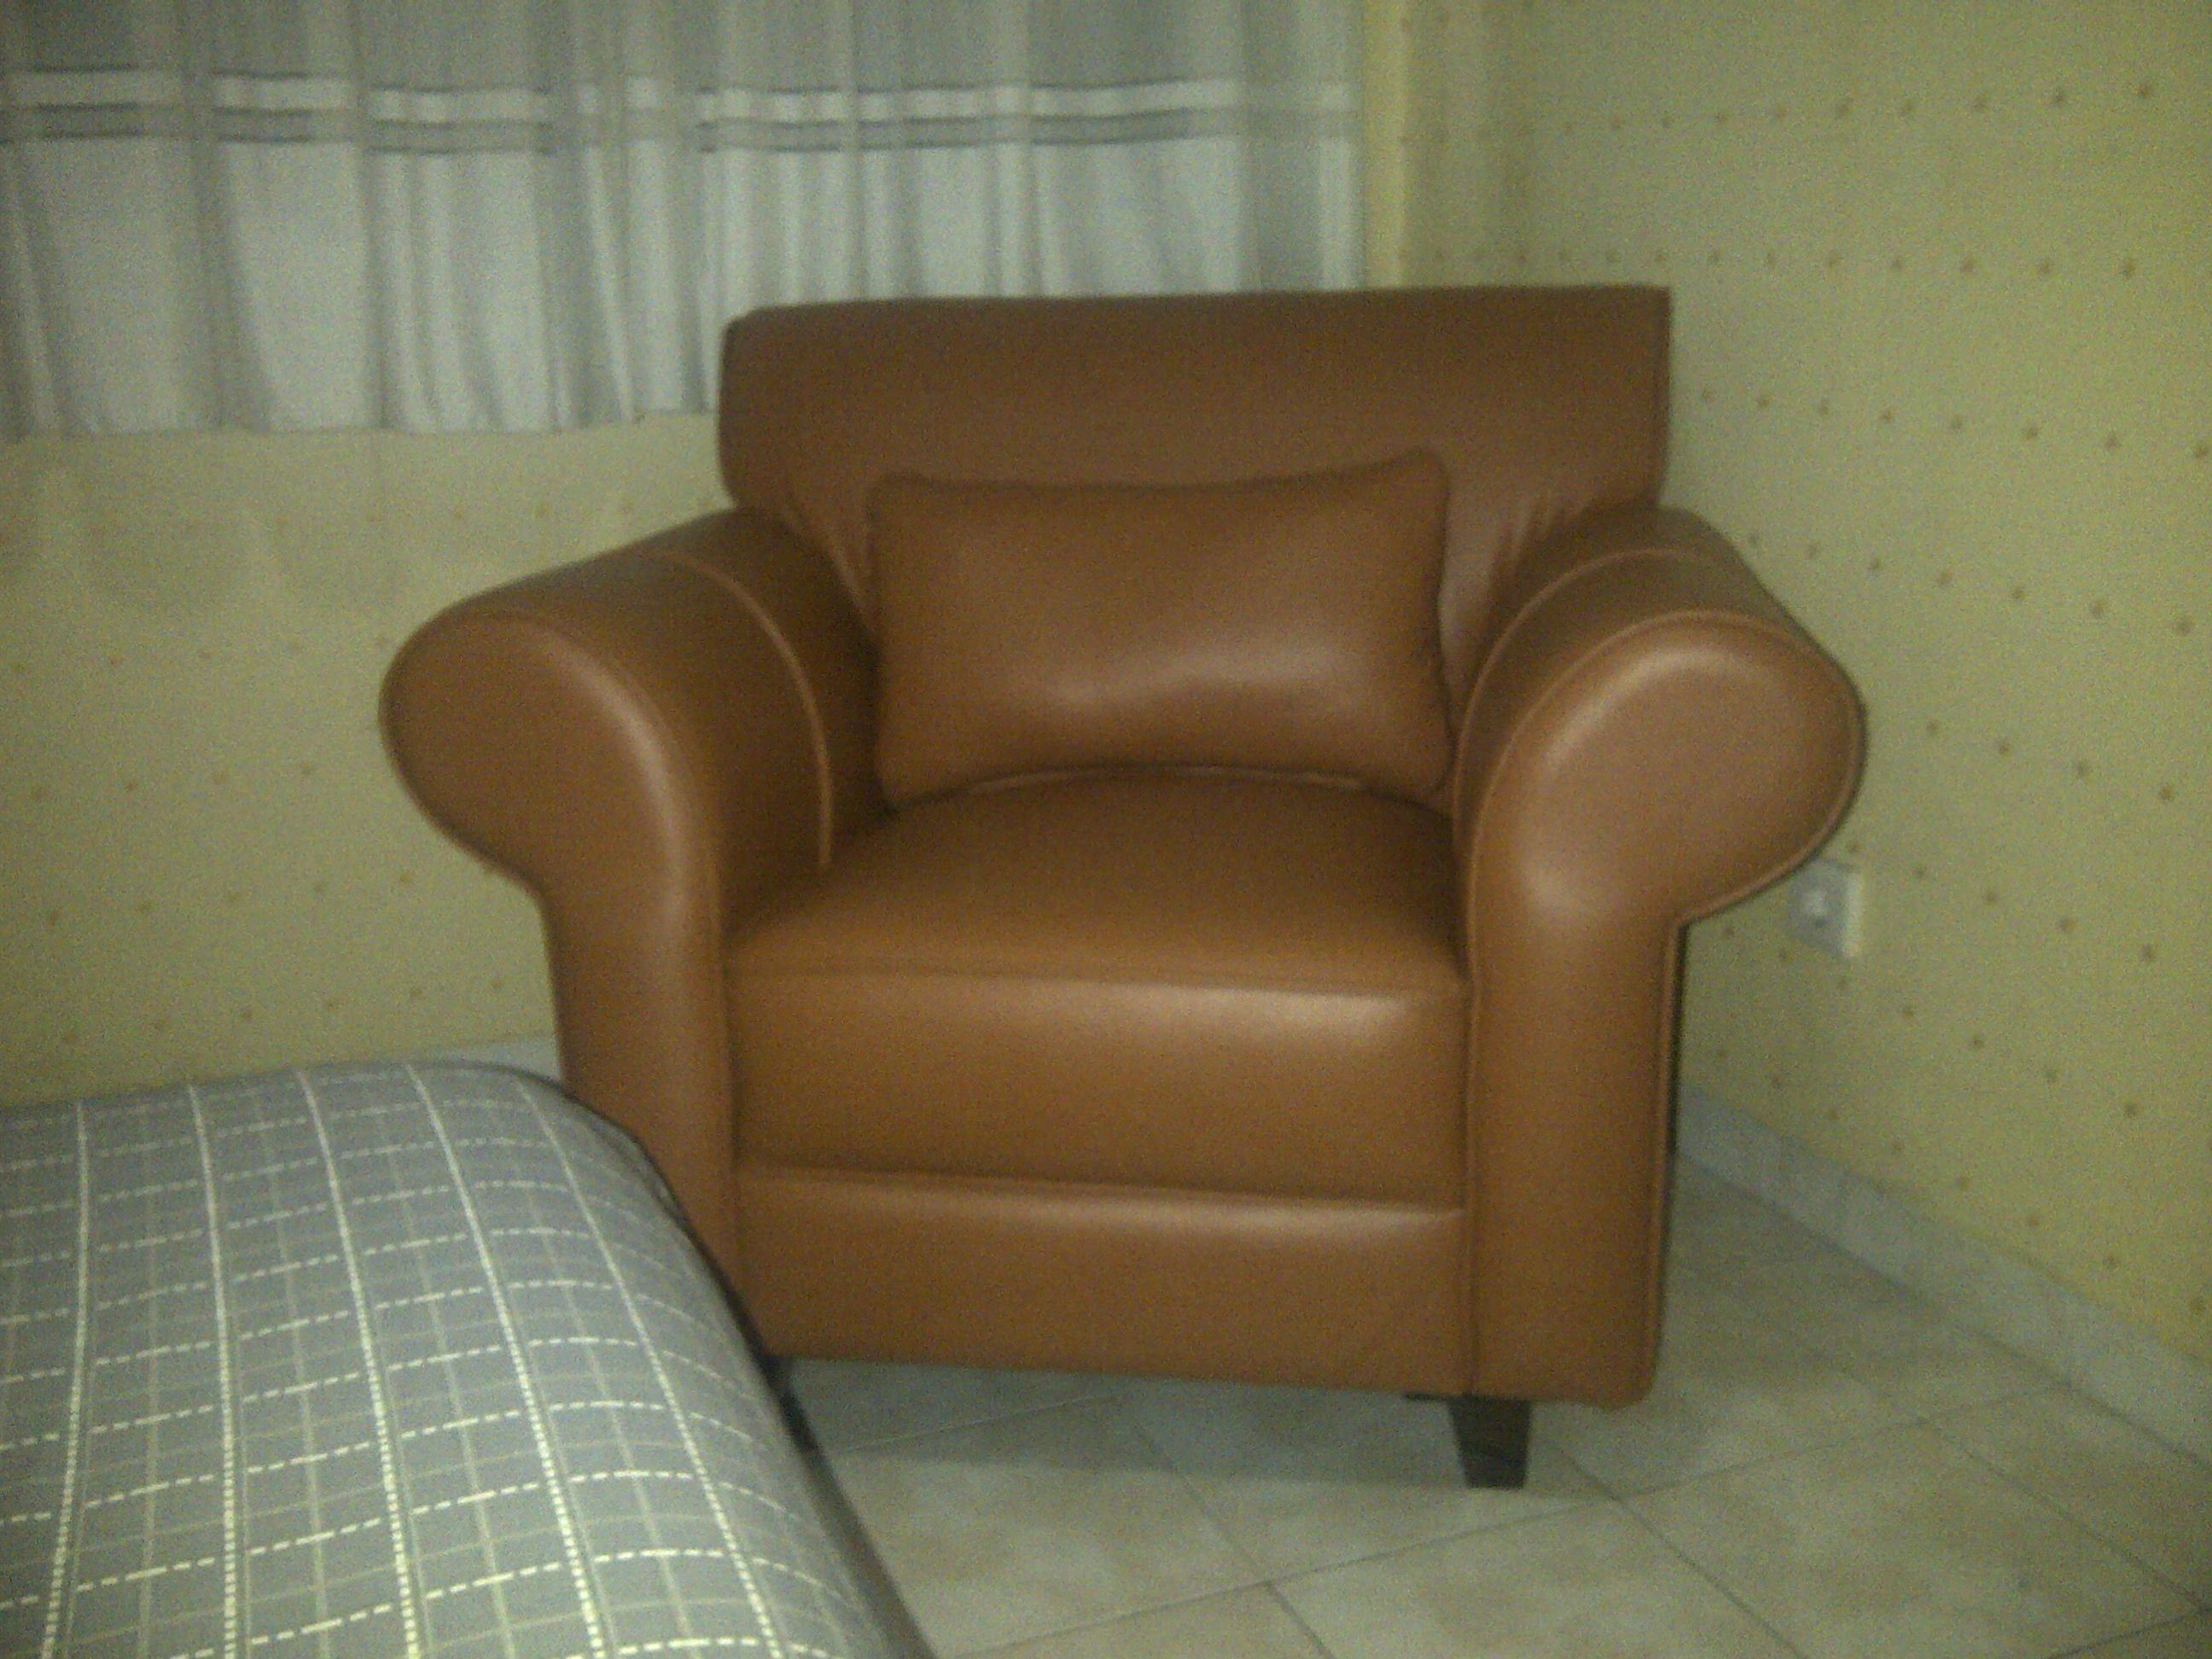 product 197788 2 SOFA ARM CHAIR MRS JOSSY PROJECT (SCJP0001)